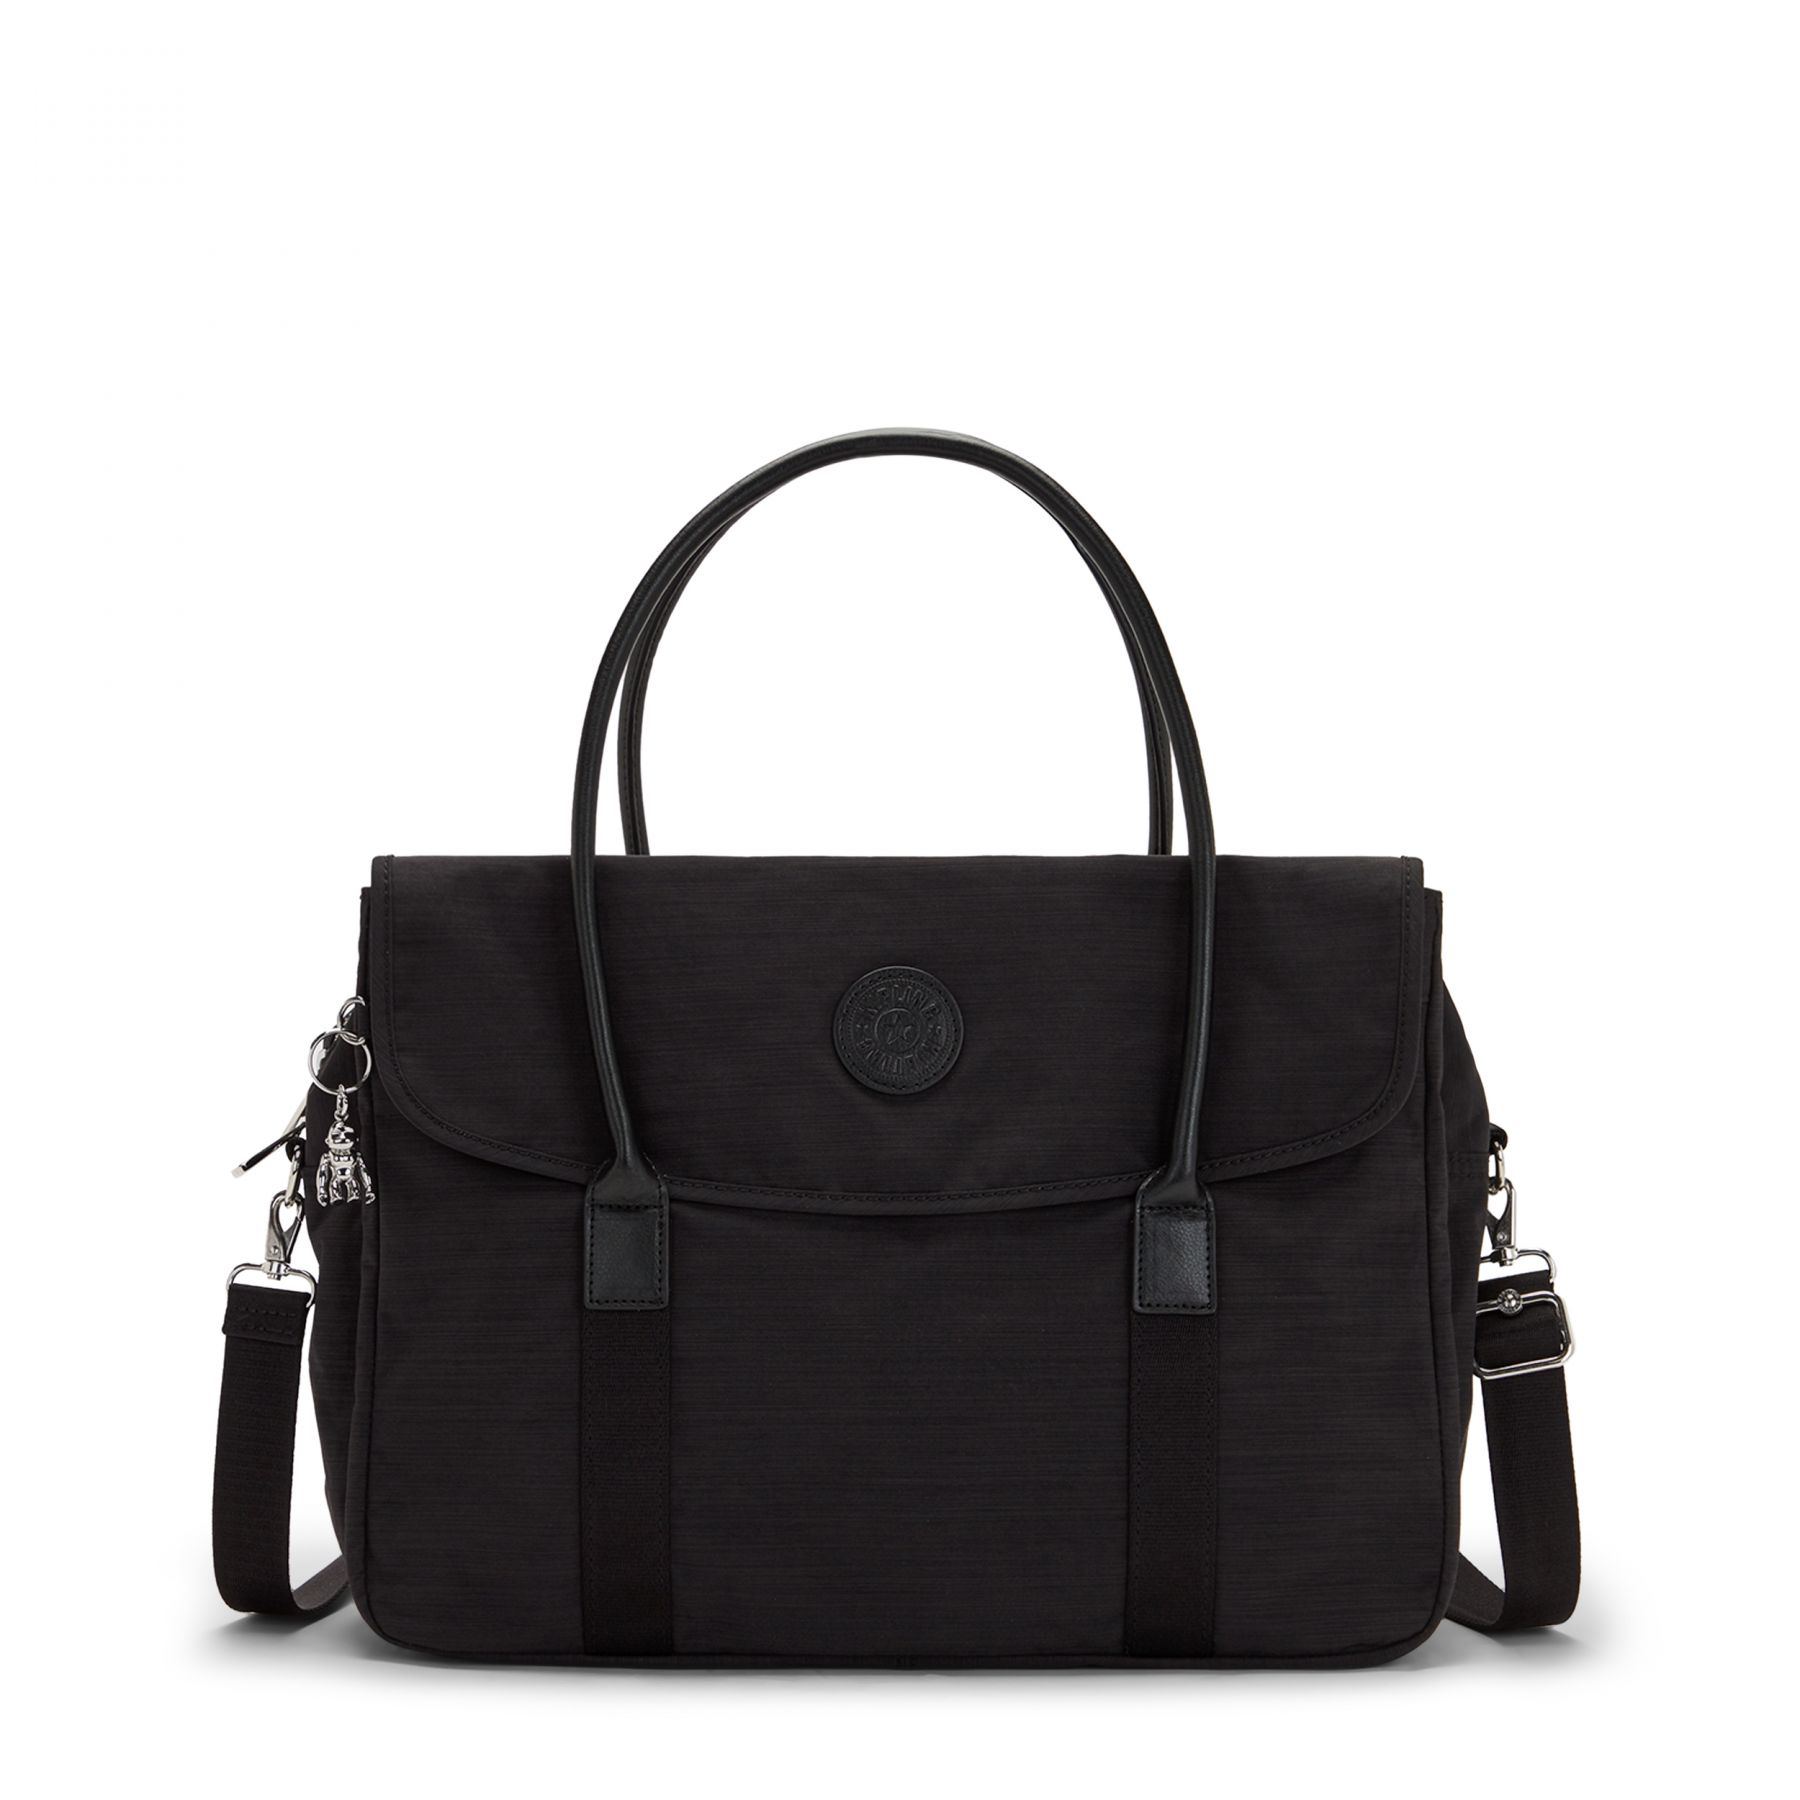 SUPERWORKER NEW IN by Kipling - Front view